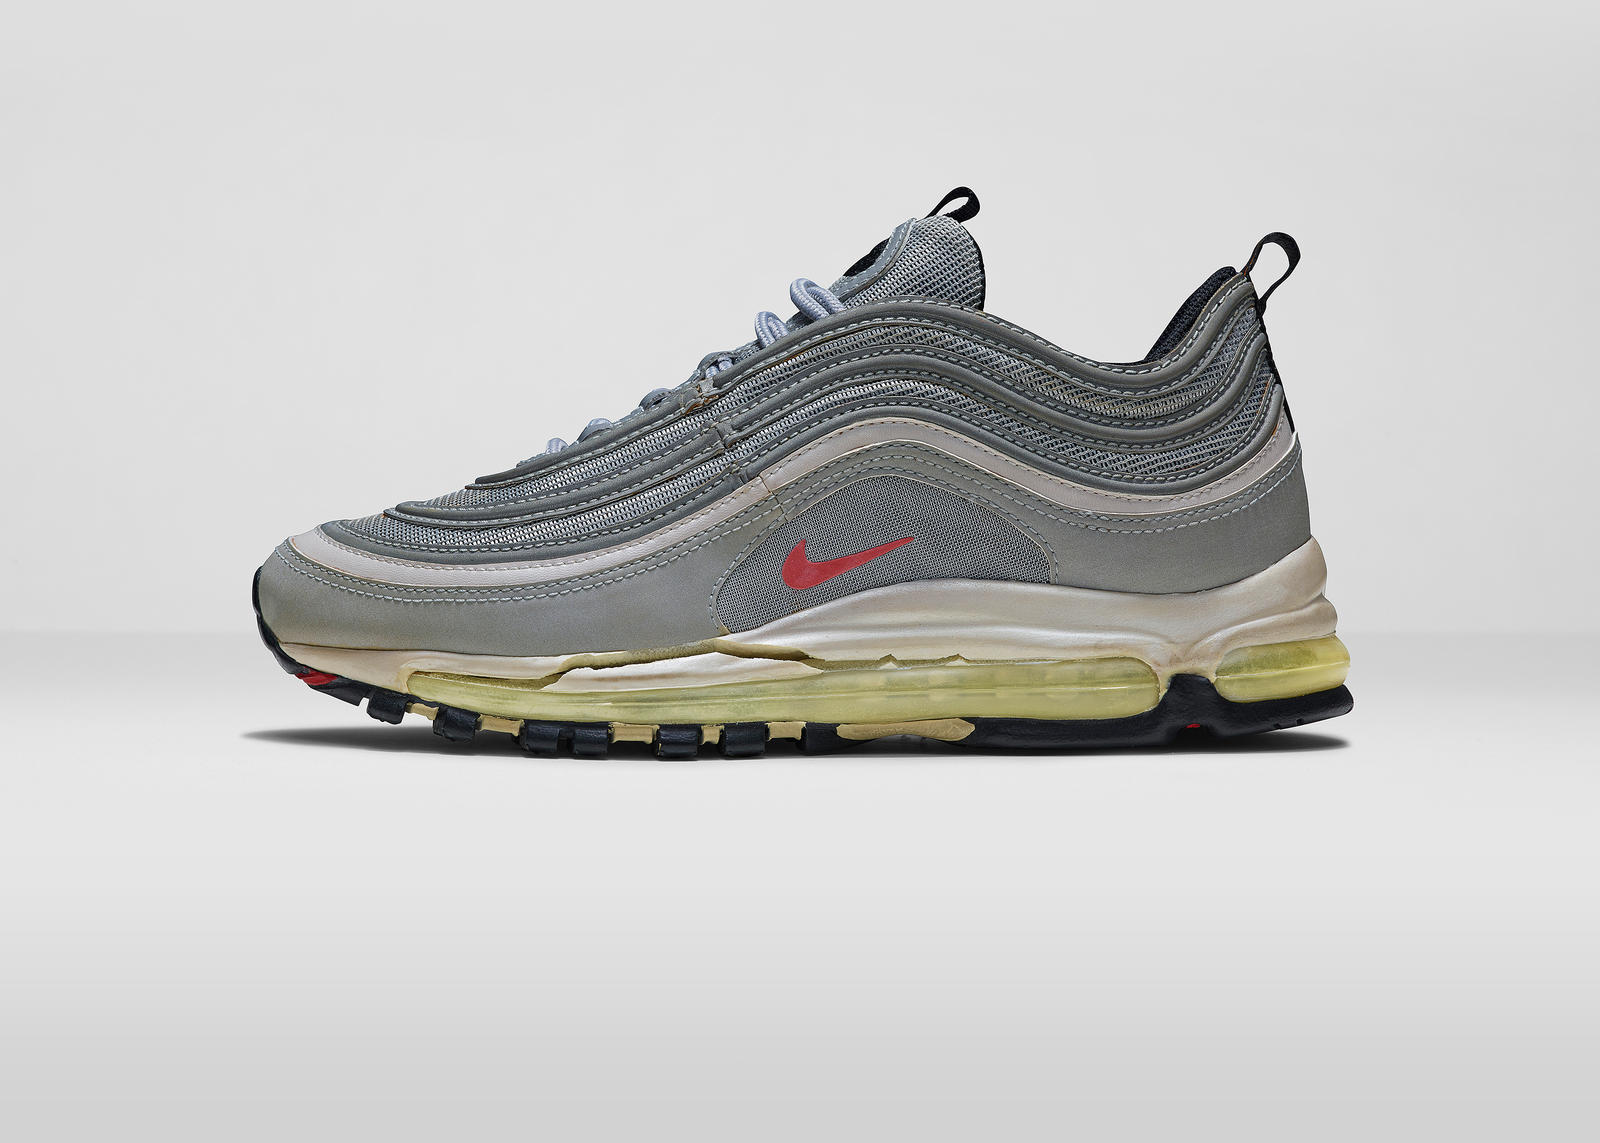 79857267c9a5 Air Max 97. Nike AirMaxDay 2015 1997 LAT. Nike Air Max Day 2015 ...